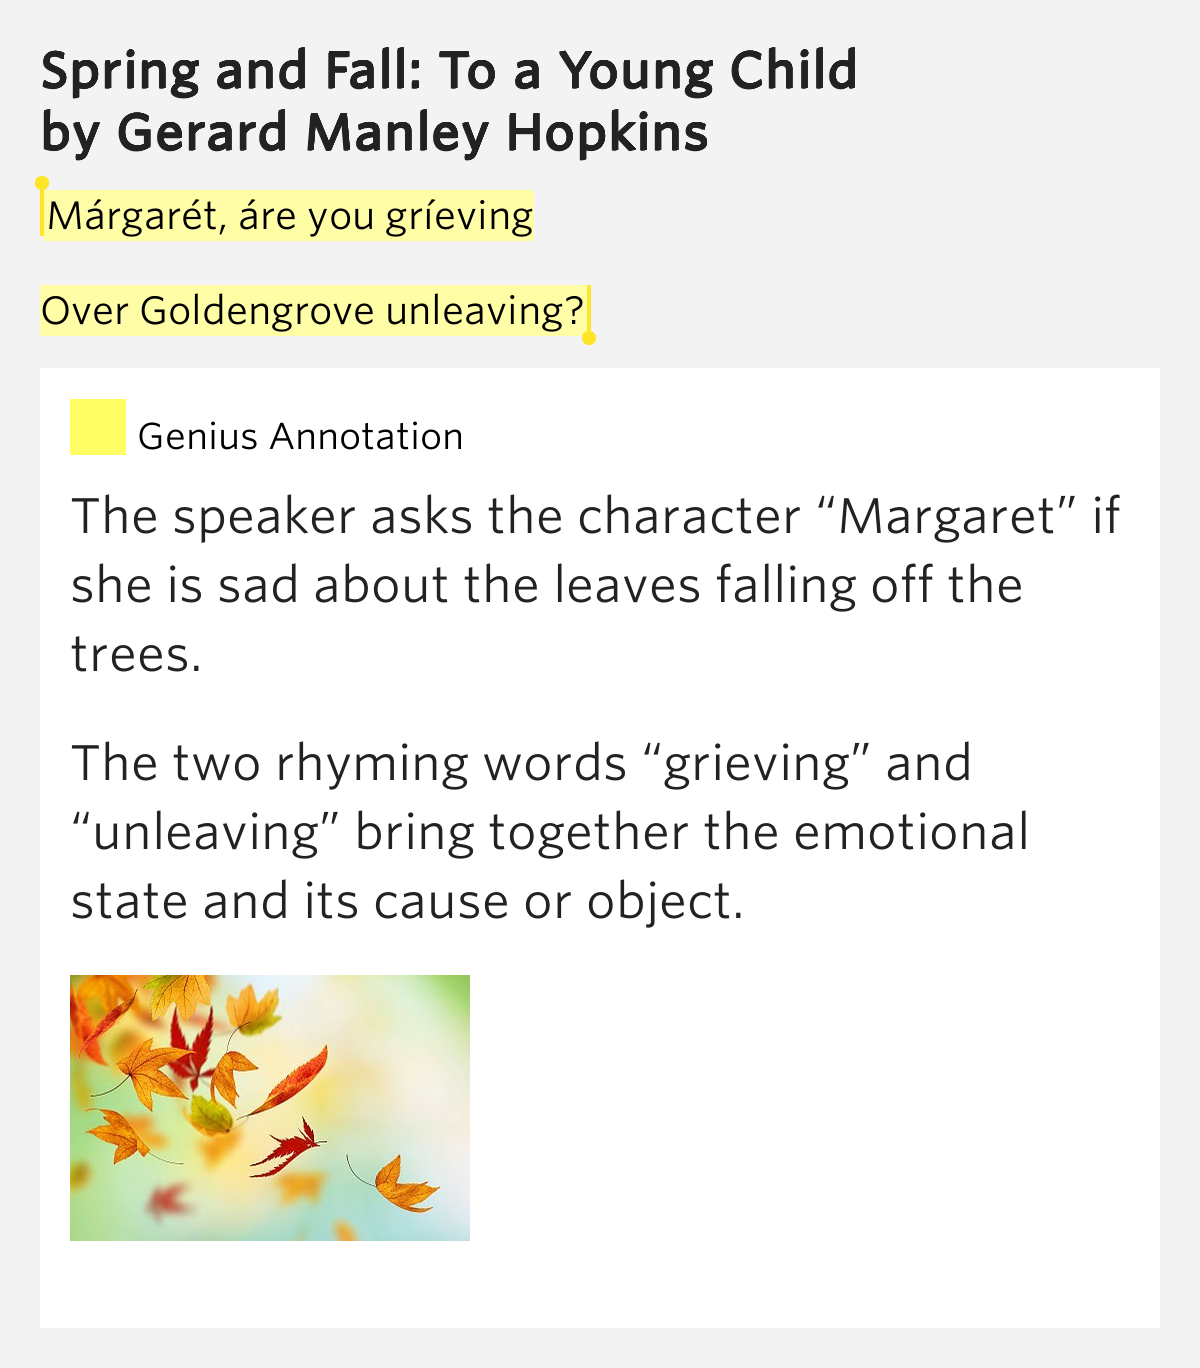 gerard manley hopkins spring and fall Language and tone in spring and fall language and voice the poem is written in couplets as a lyric in sprung rhythmeach line basically has four stresses (ie a tetrameter), apart from the last line, which only has three stresses.